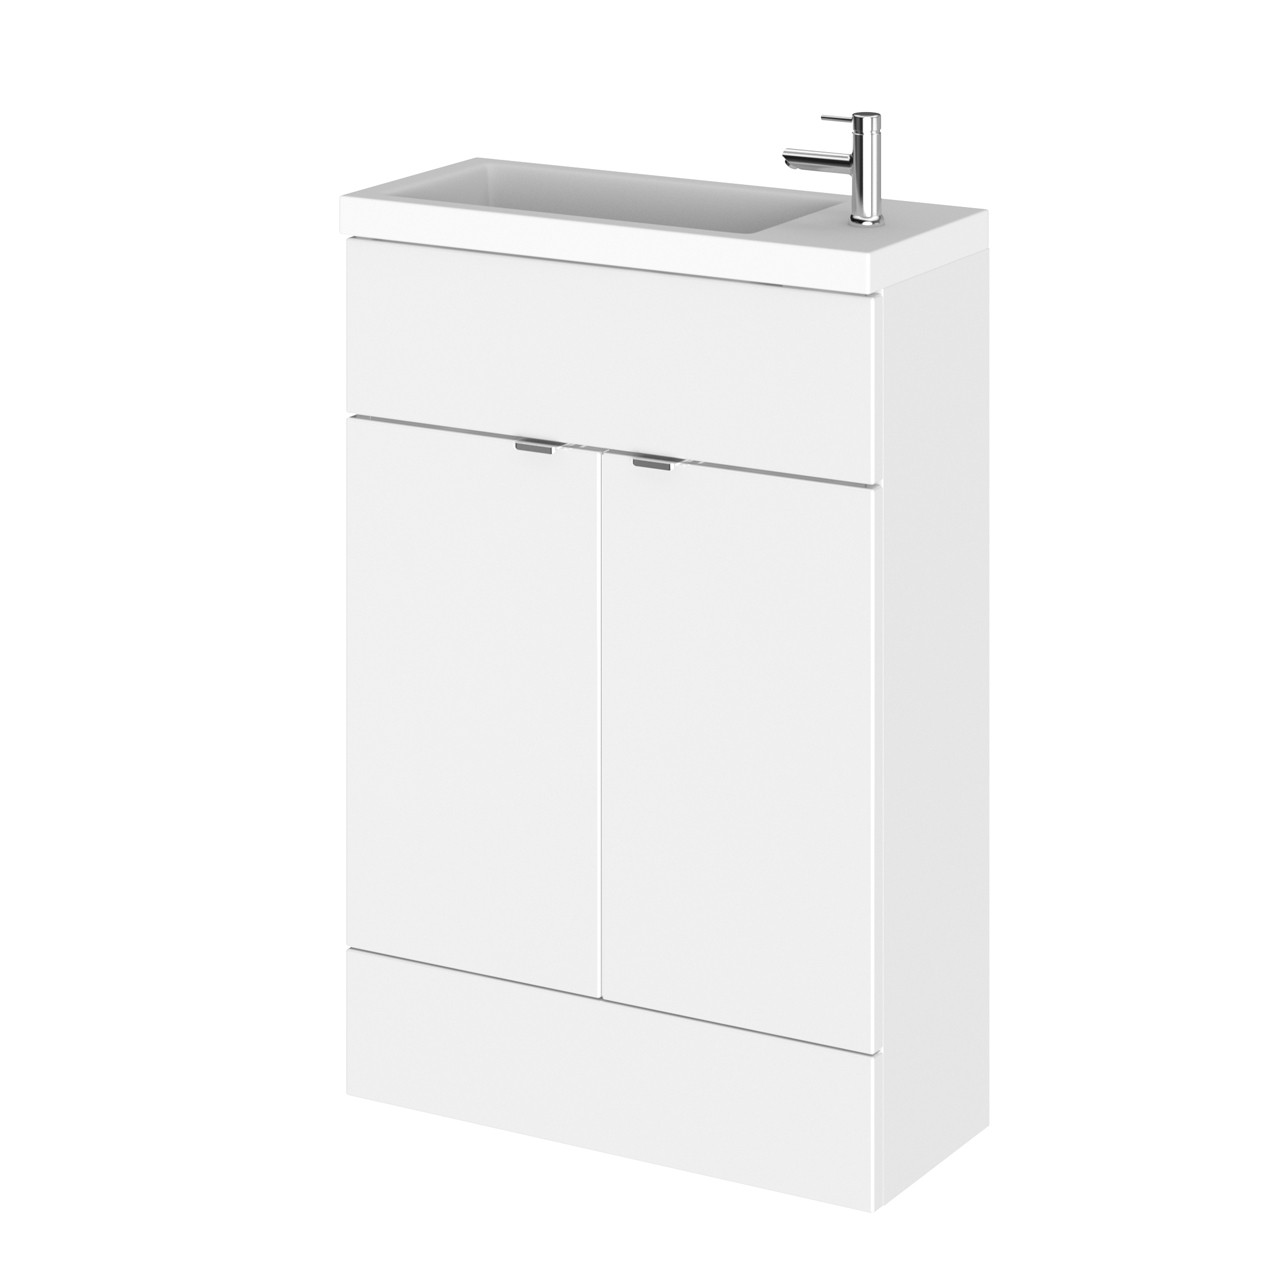 Hudson Reed Gloss White 600mm Compact Vanity Unit with Basin - CBI106